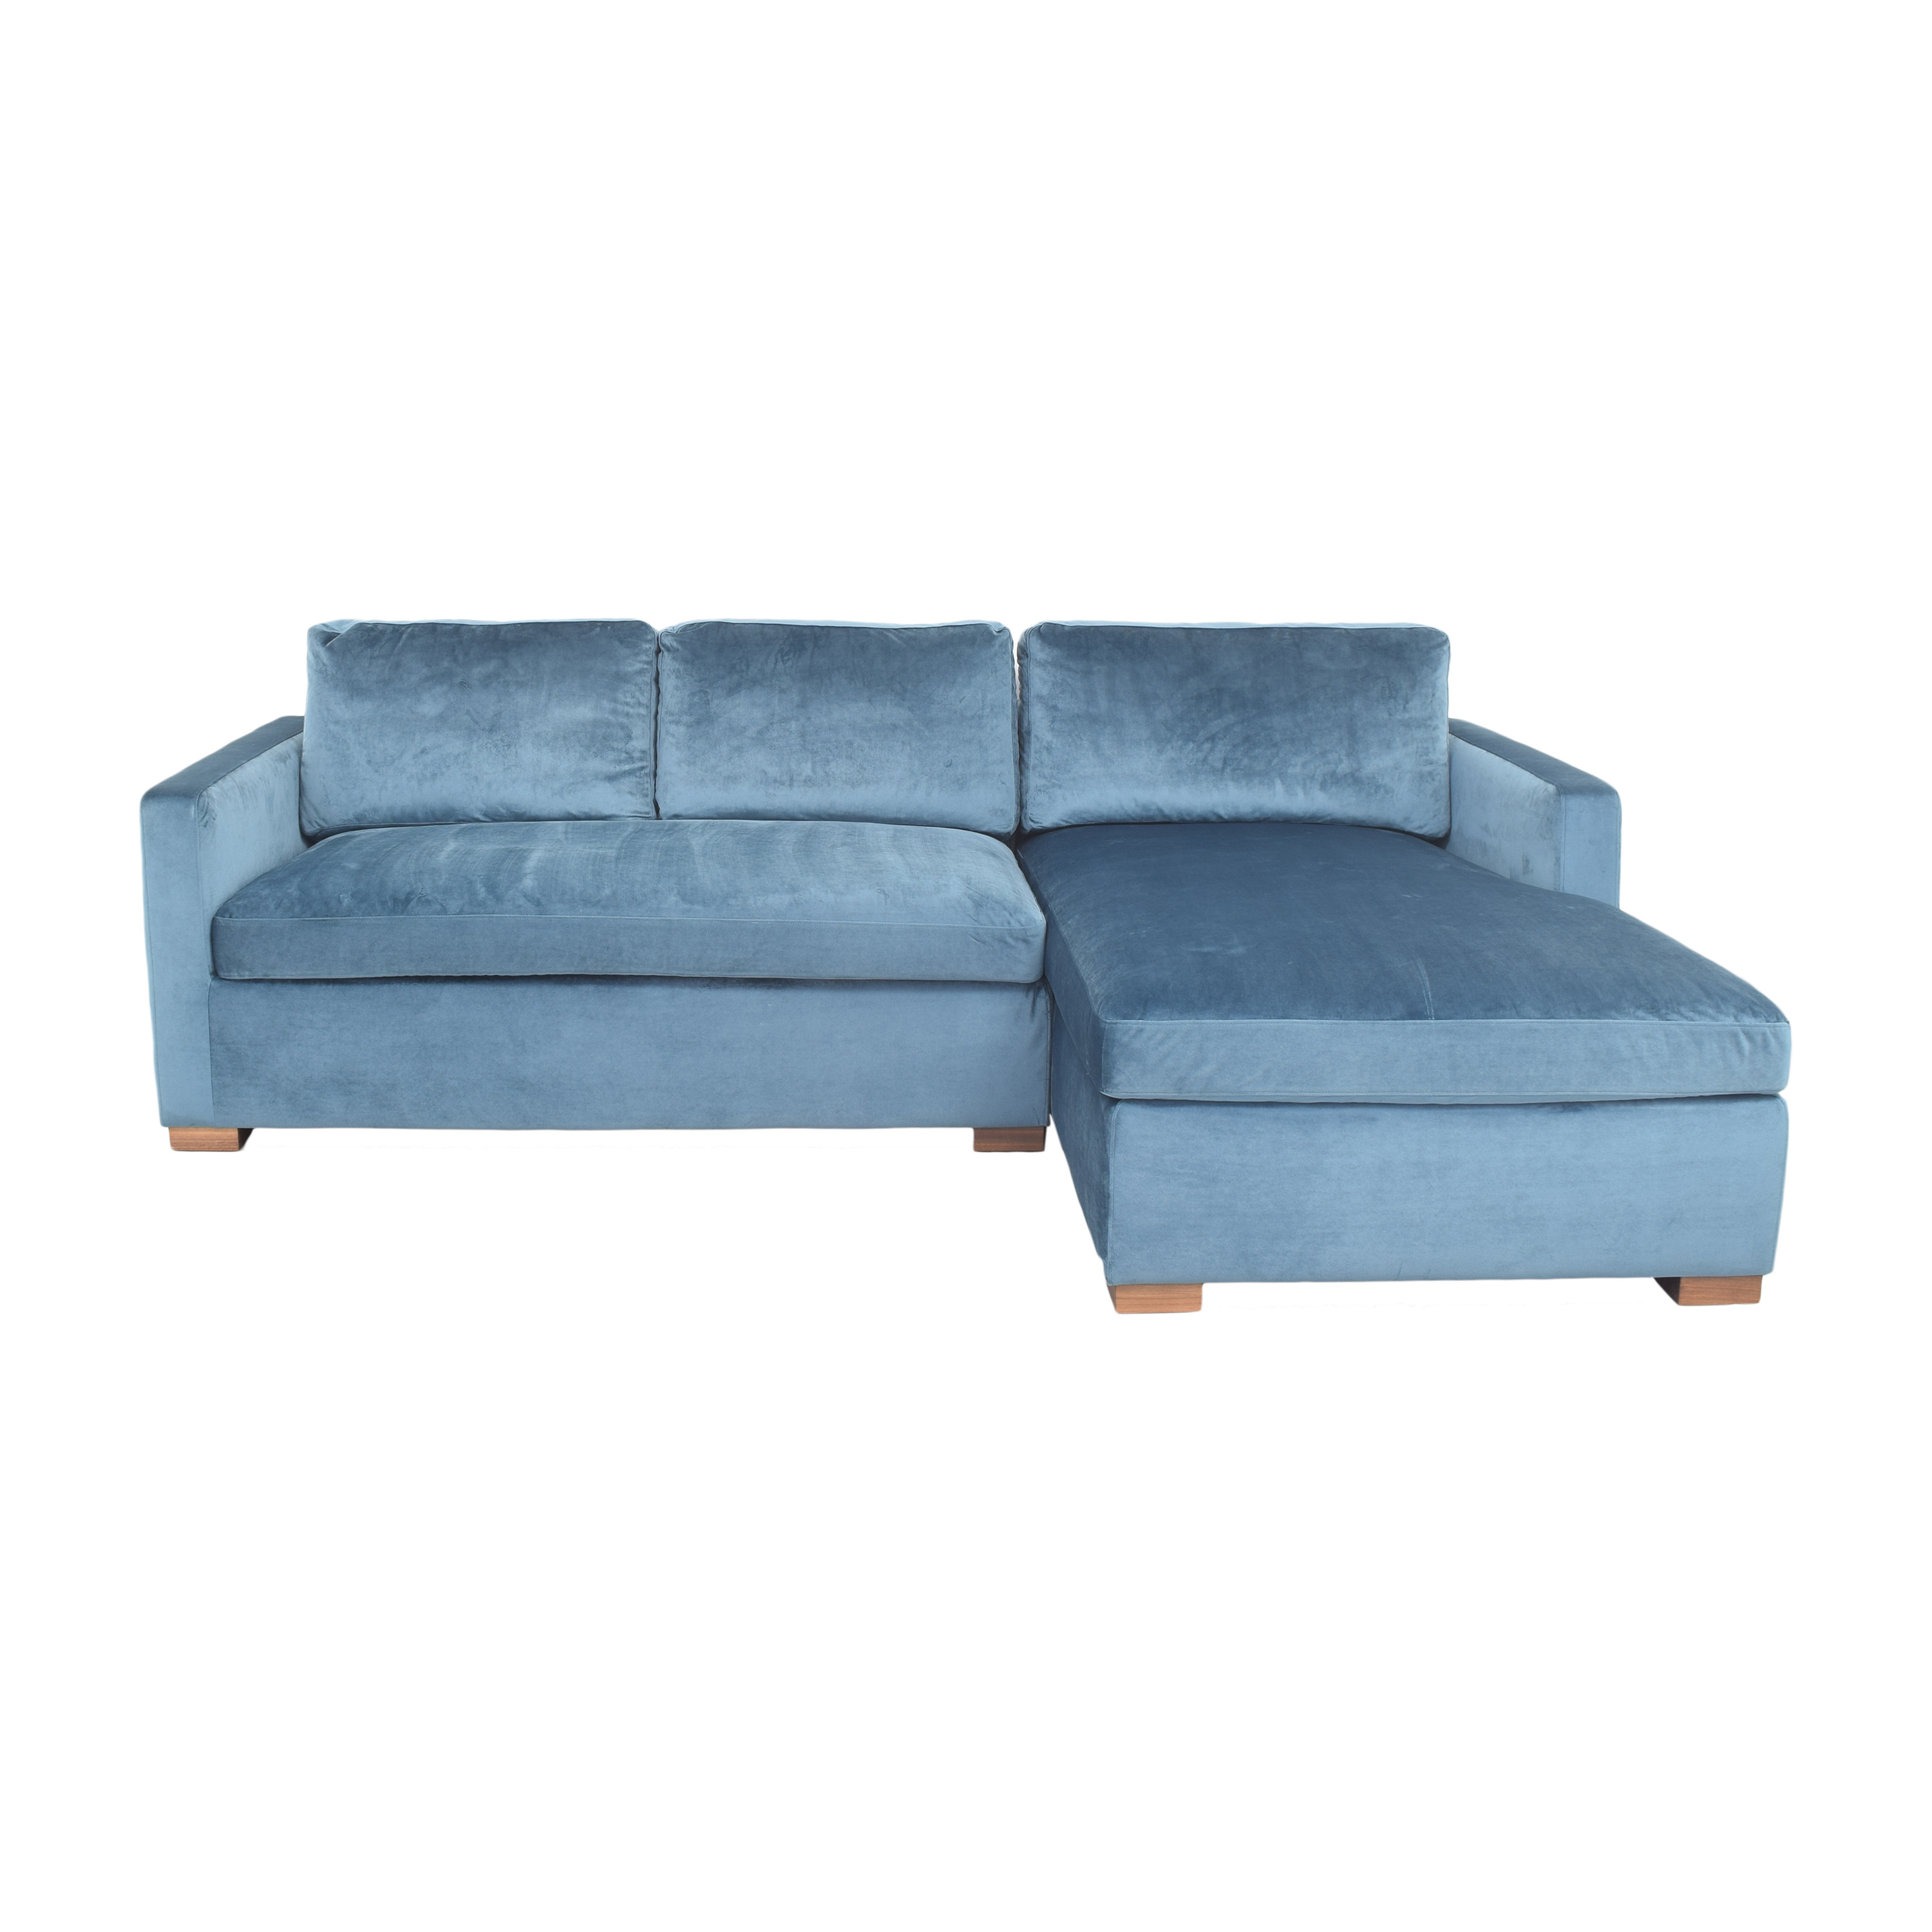 Interior Define Charly Sectional Sofa with Chaise / Sofas